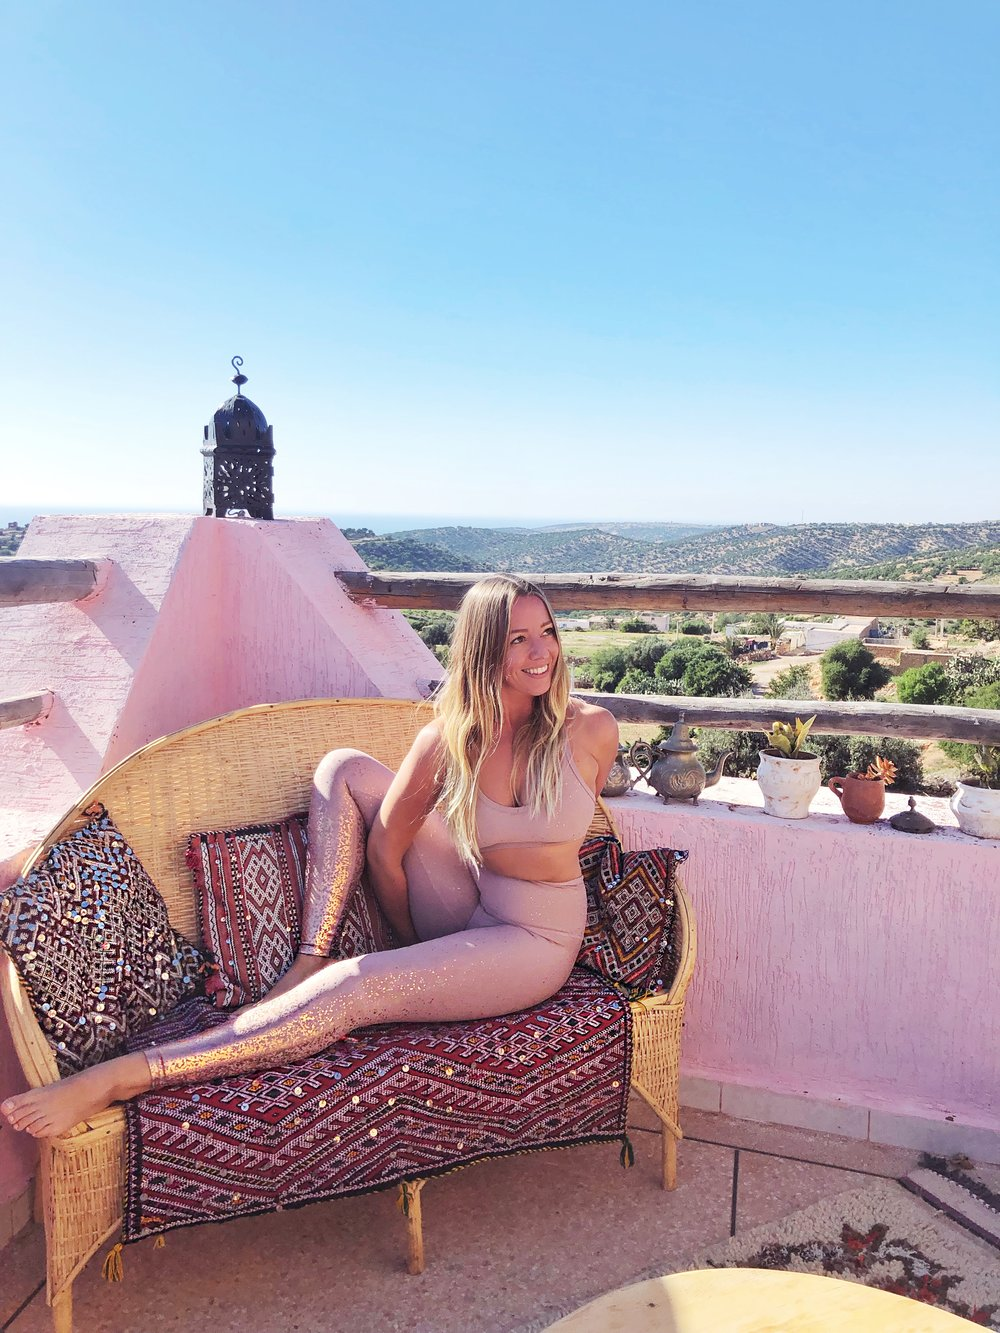 The'expand from within' summer solstice retreat - Agouni - Morocco - 15th June 19/22nd June 19*10% early bird discount applies until 1st March